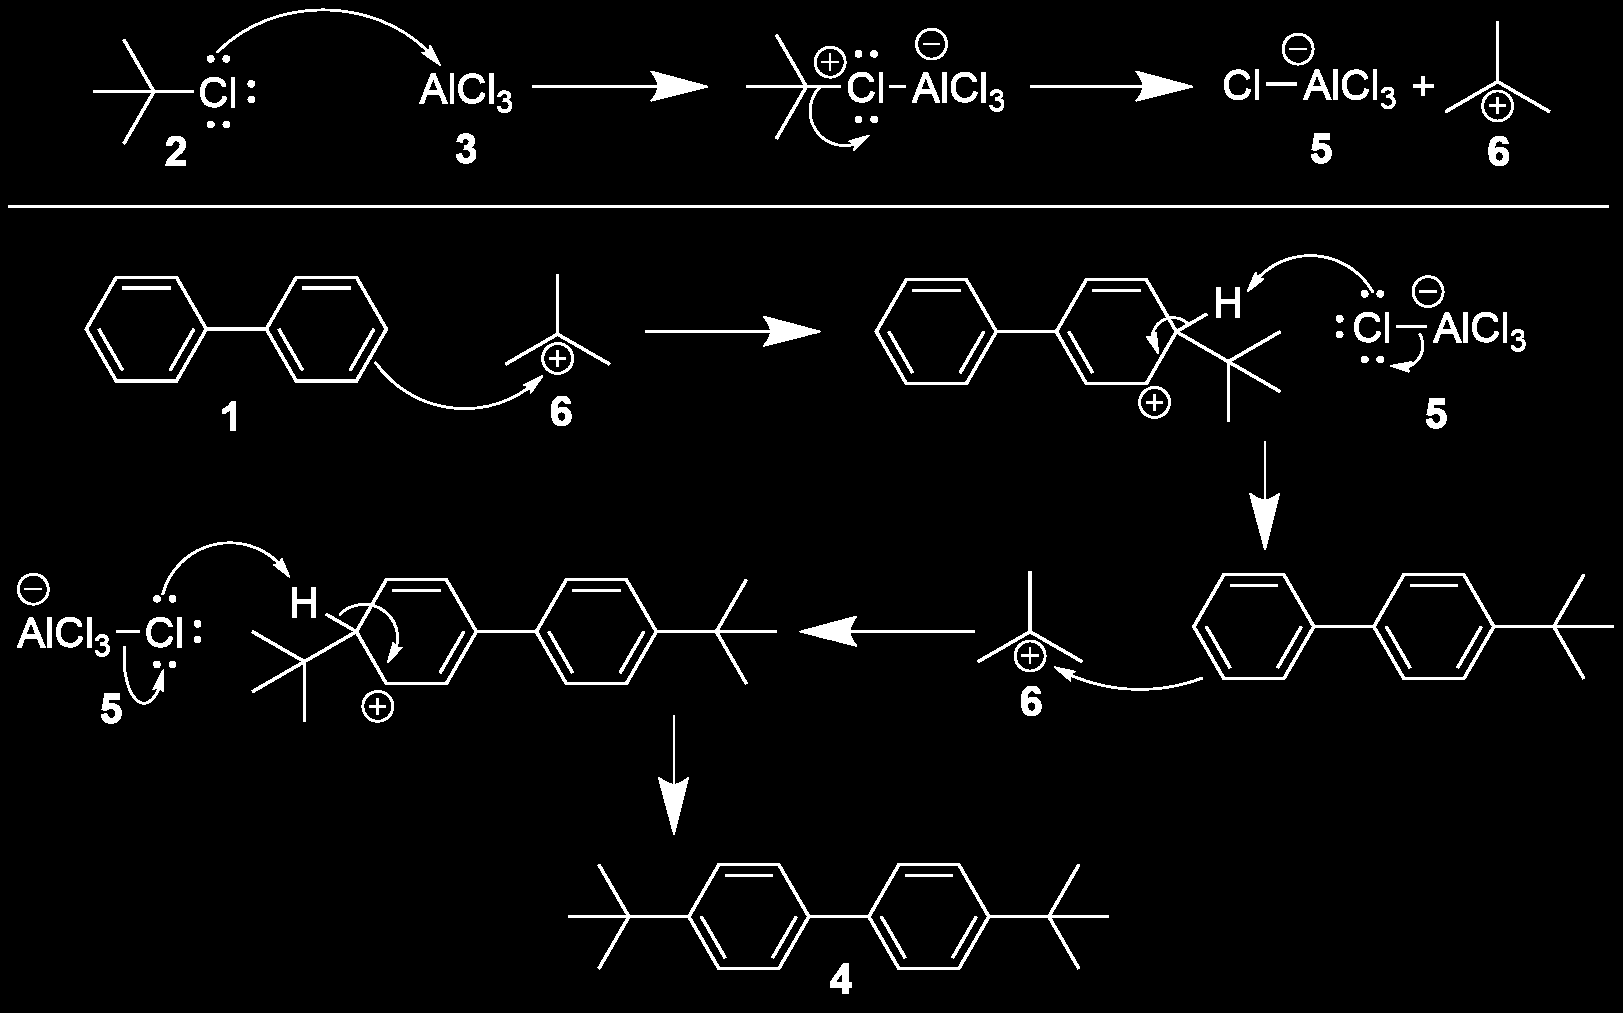 the substituents are added on both sides of the biphenyl reactant, while the aluminum and dichloromethane serve to facilitate the reaction.